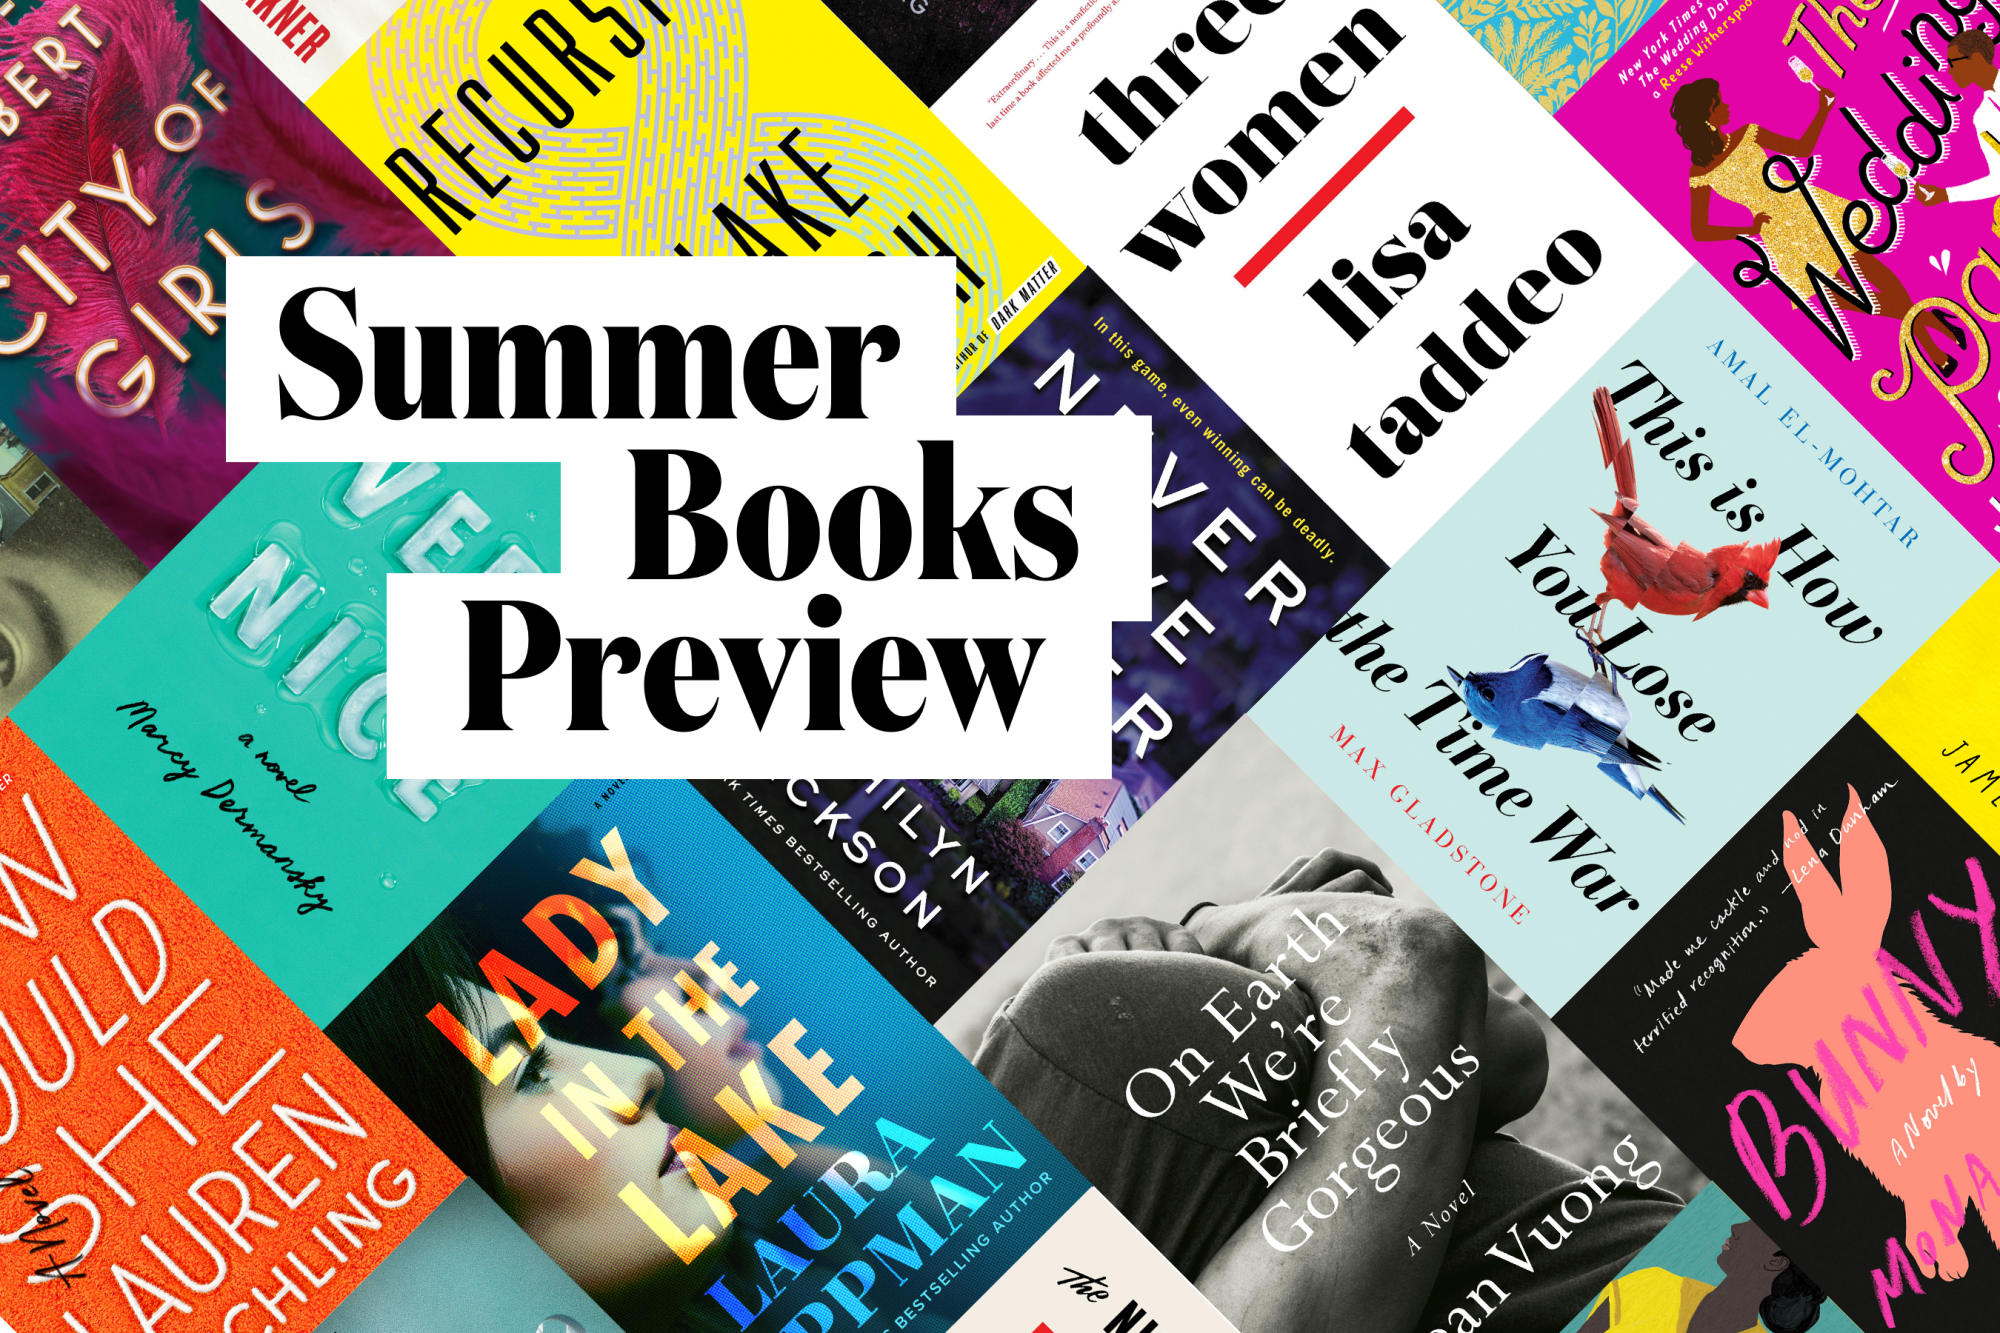 Summer Book Preview